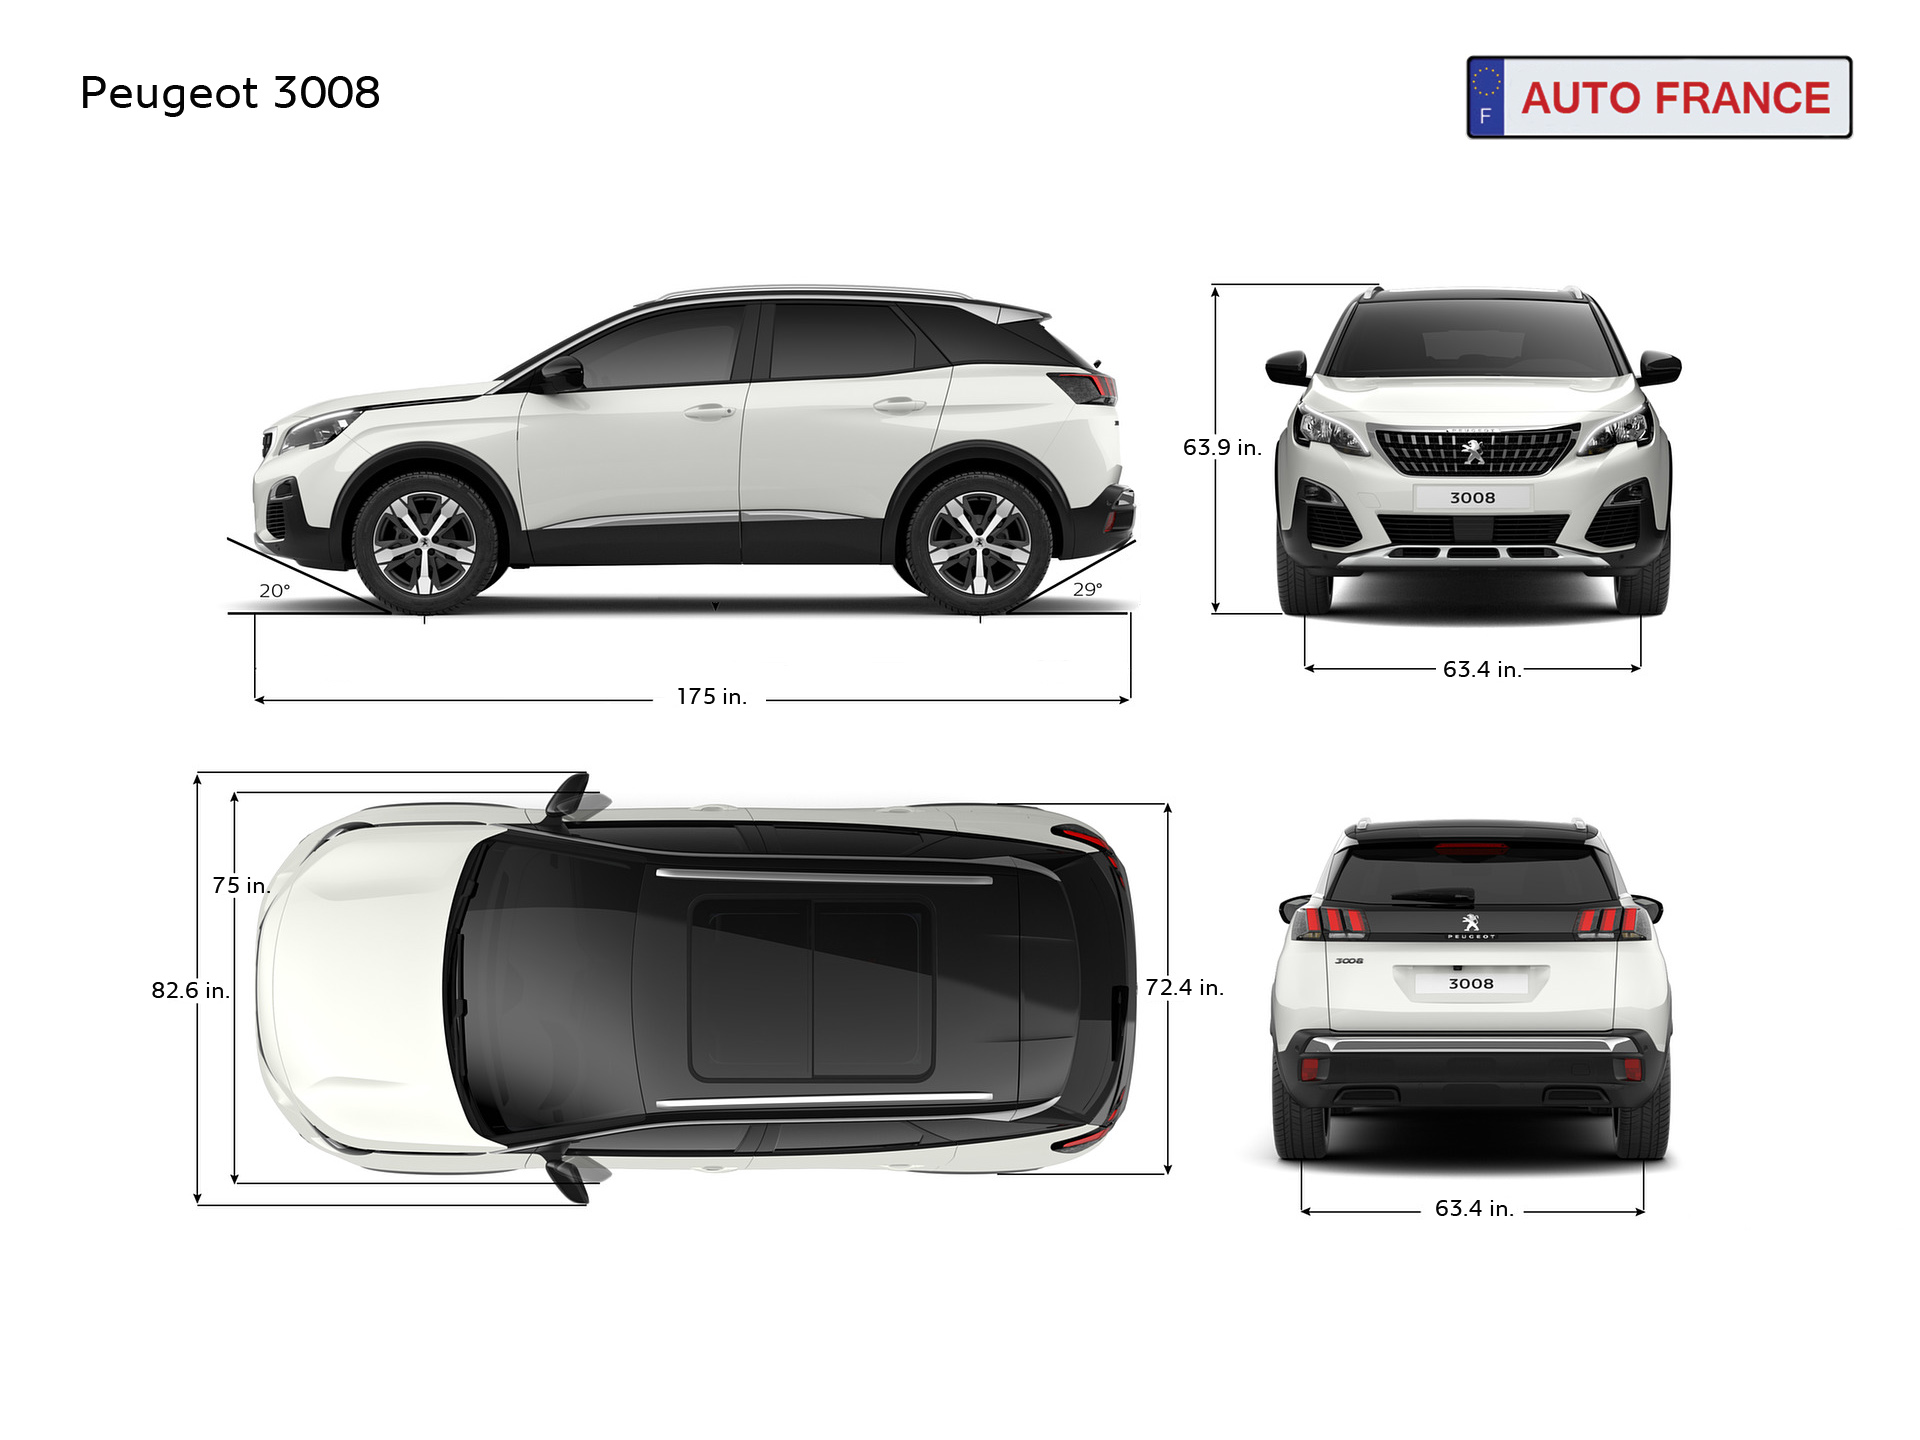 peugeot 3008 information dimensions specifications. Black Bedroom Furniture Sets. Home Design Ideas